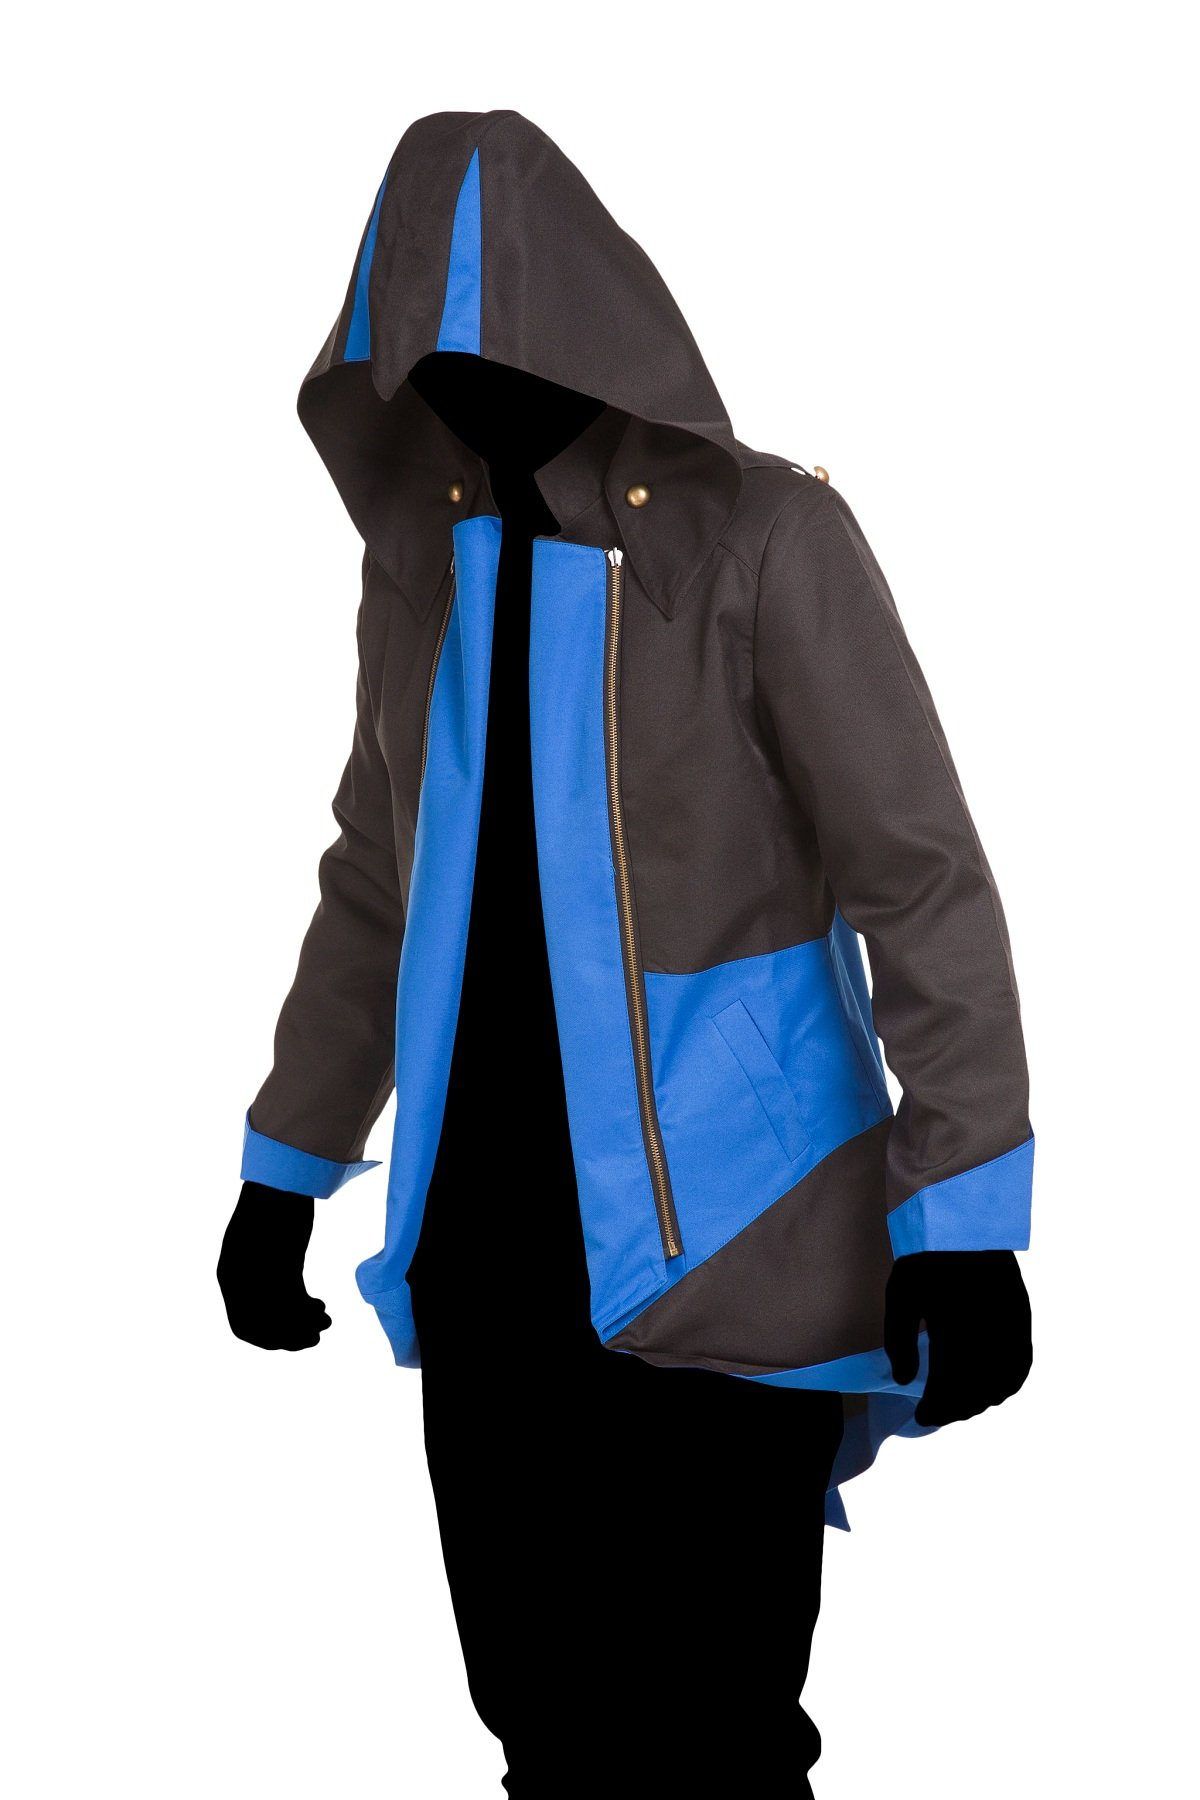 Cosplay Costume Hoodie/Jacket/Coat-9 Options for the fans,Black with Blue,Men Large